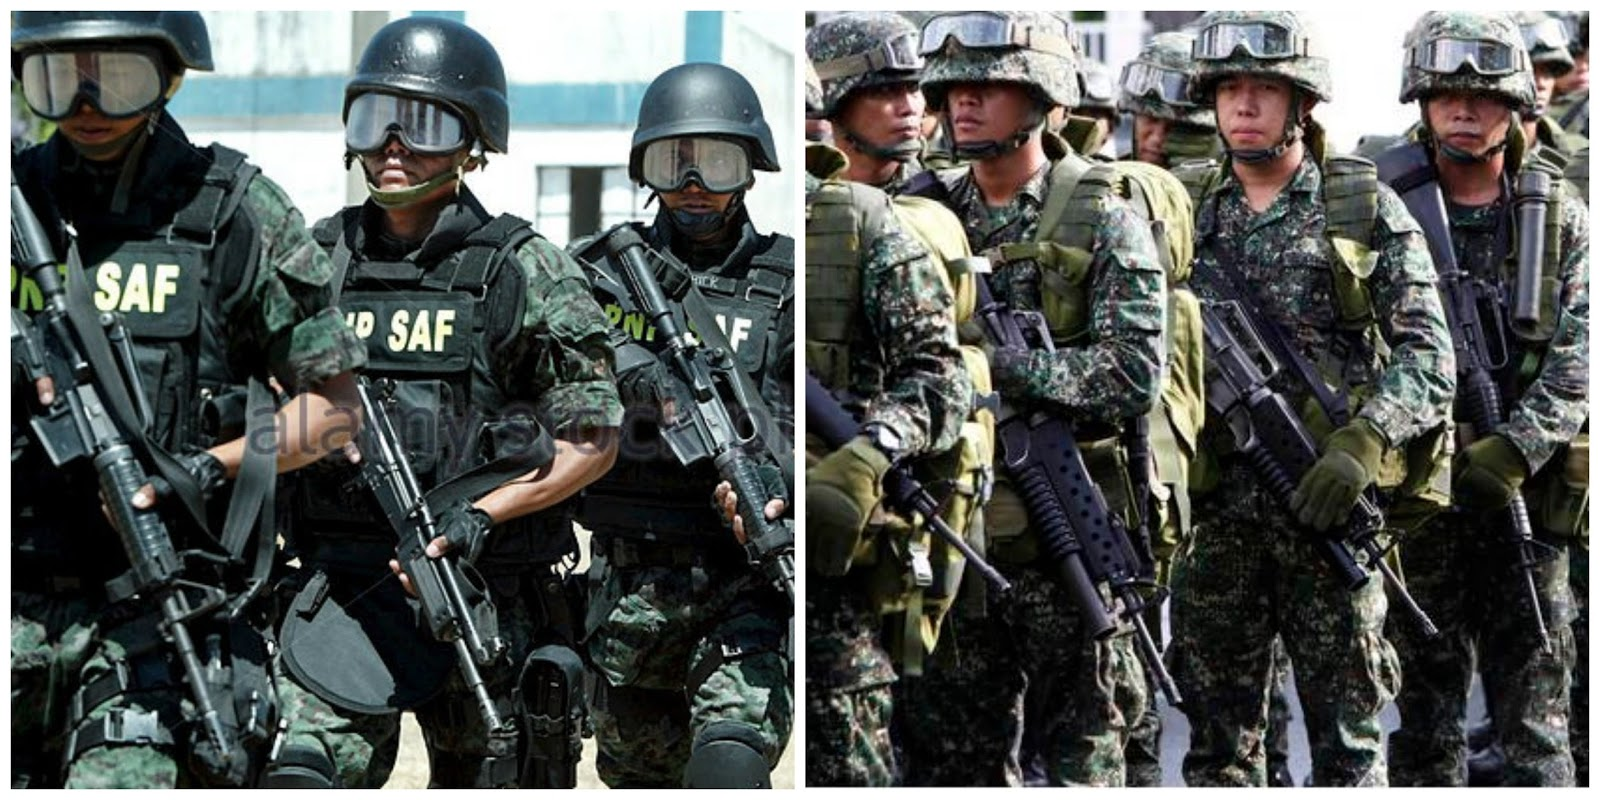 Change Is Coming. PNP SAF and Marines to man Bilibid Prison